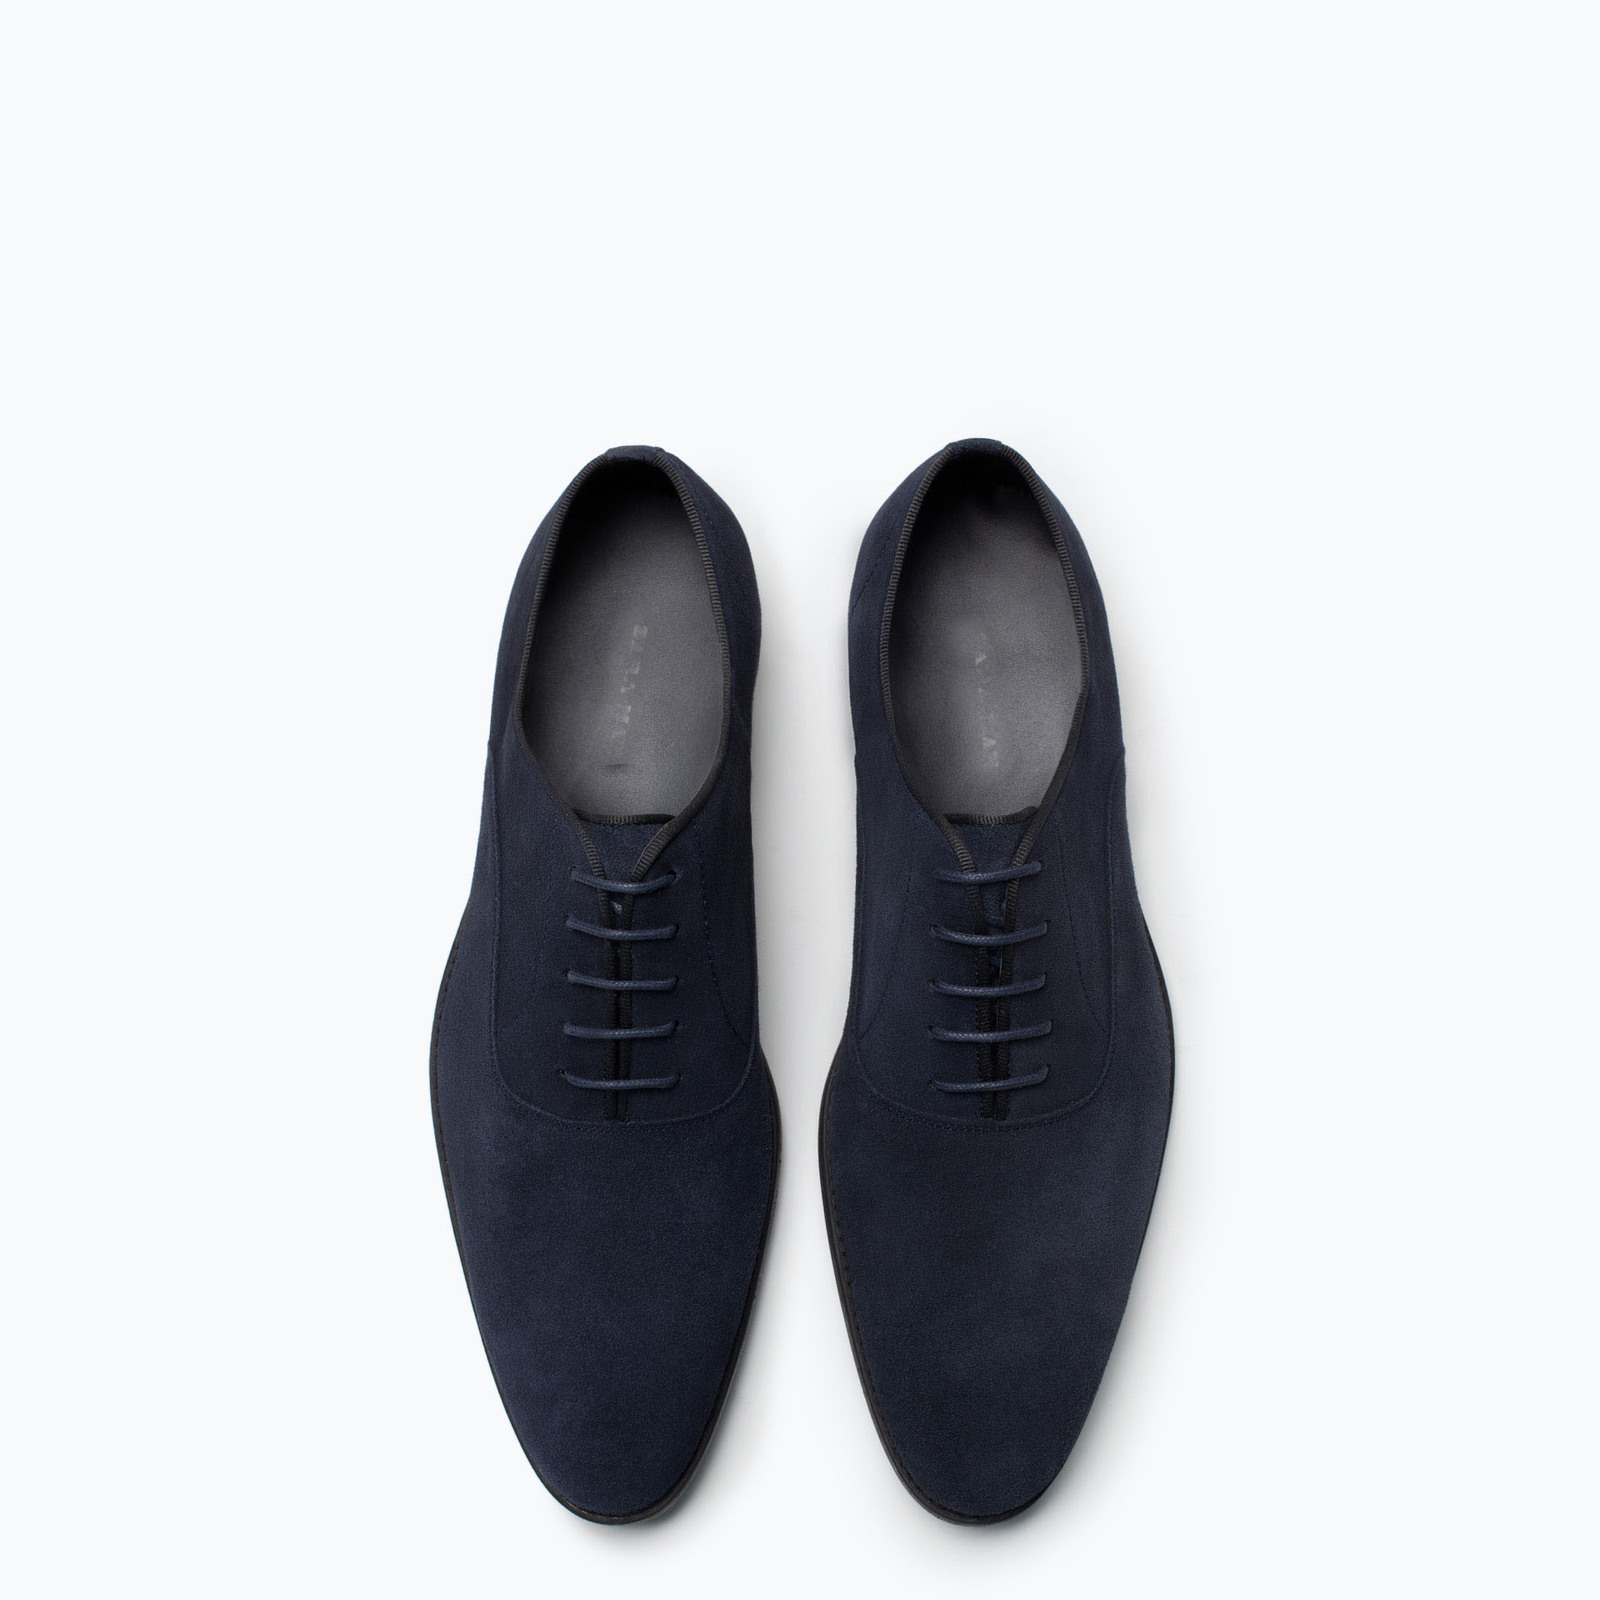 mens navy blue suede leather formal shoes s fashion